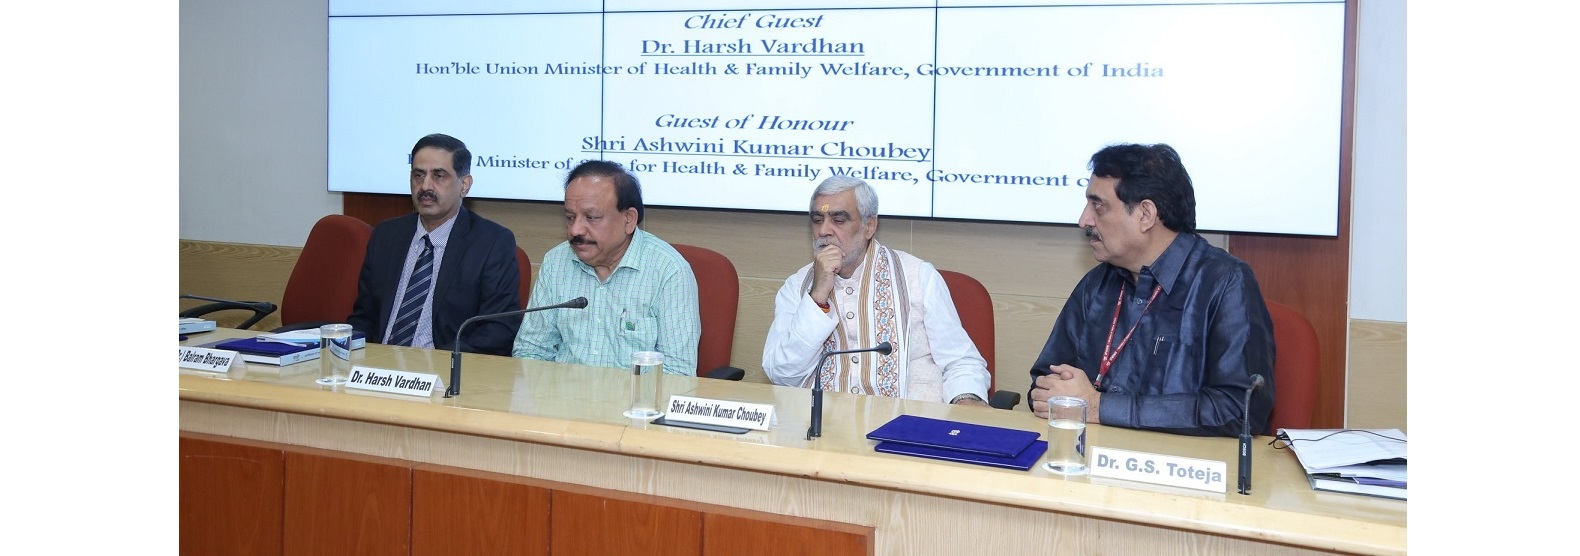 ICMR Awards Presentation on 16th October 2019